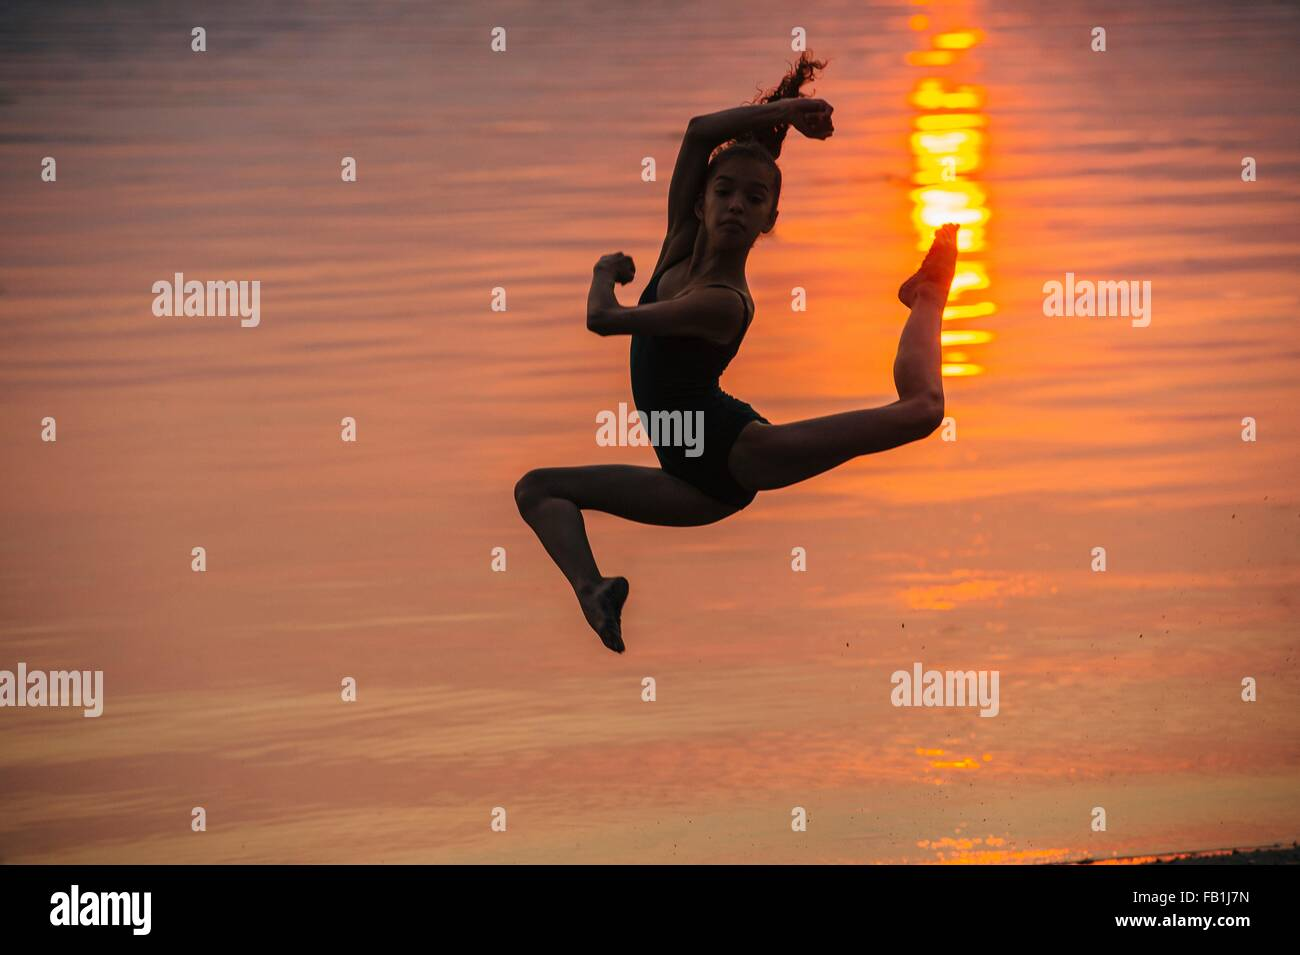 Side view of girl in silhouette by ocean at sunset leaping in mid air, legs apart looking at camera Stock Photo